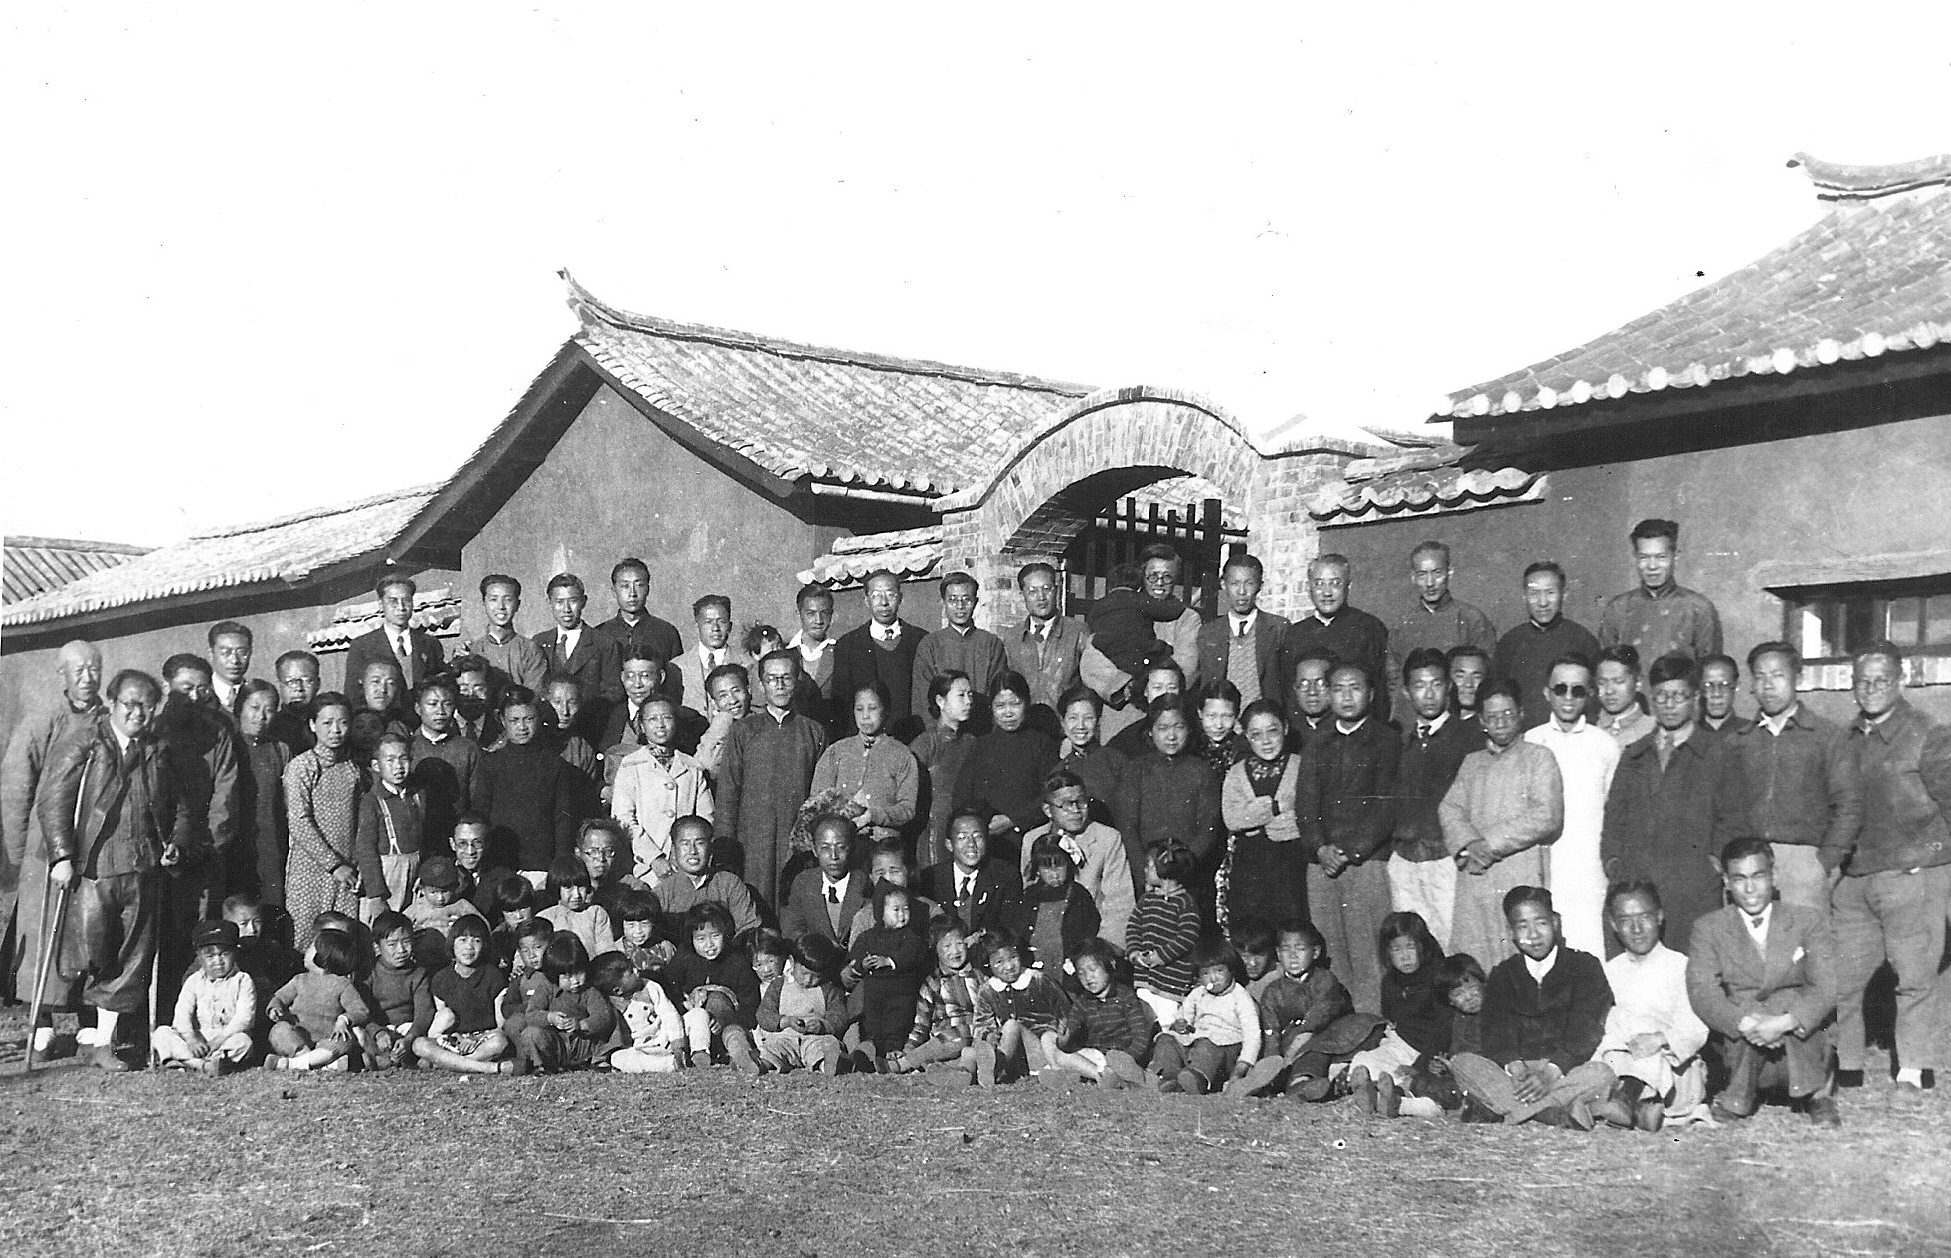 Group photo of faculty and family of National Southwest Associated University (Xinan Lianda), 1940. CK Jen is at the center front row, kneeling down, with his wife,Paocheng Tao, on his right side, her face partly obscured by a standing May, their first-born daughter. Image courtesy George Koo.